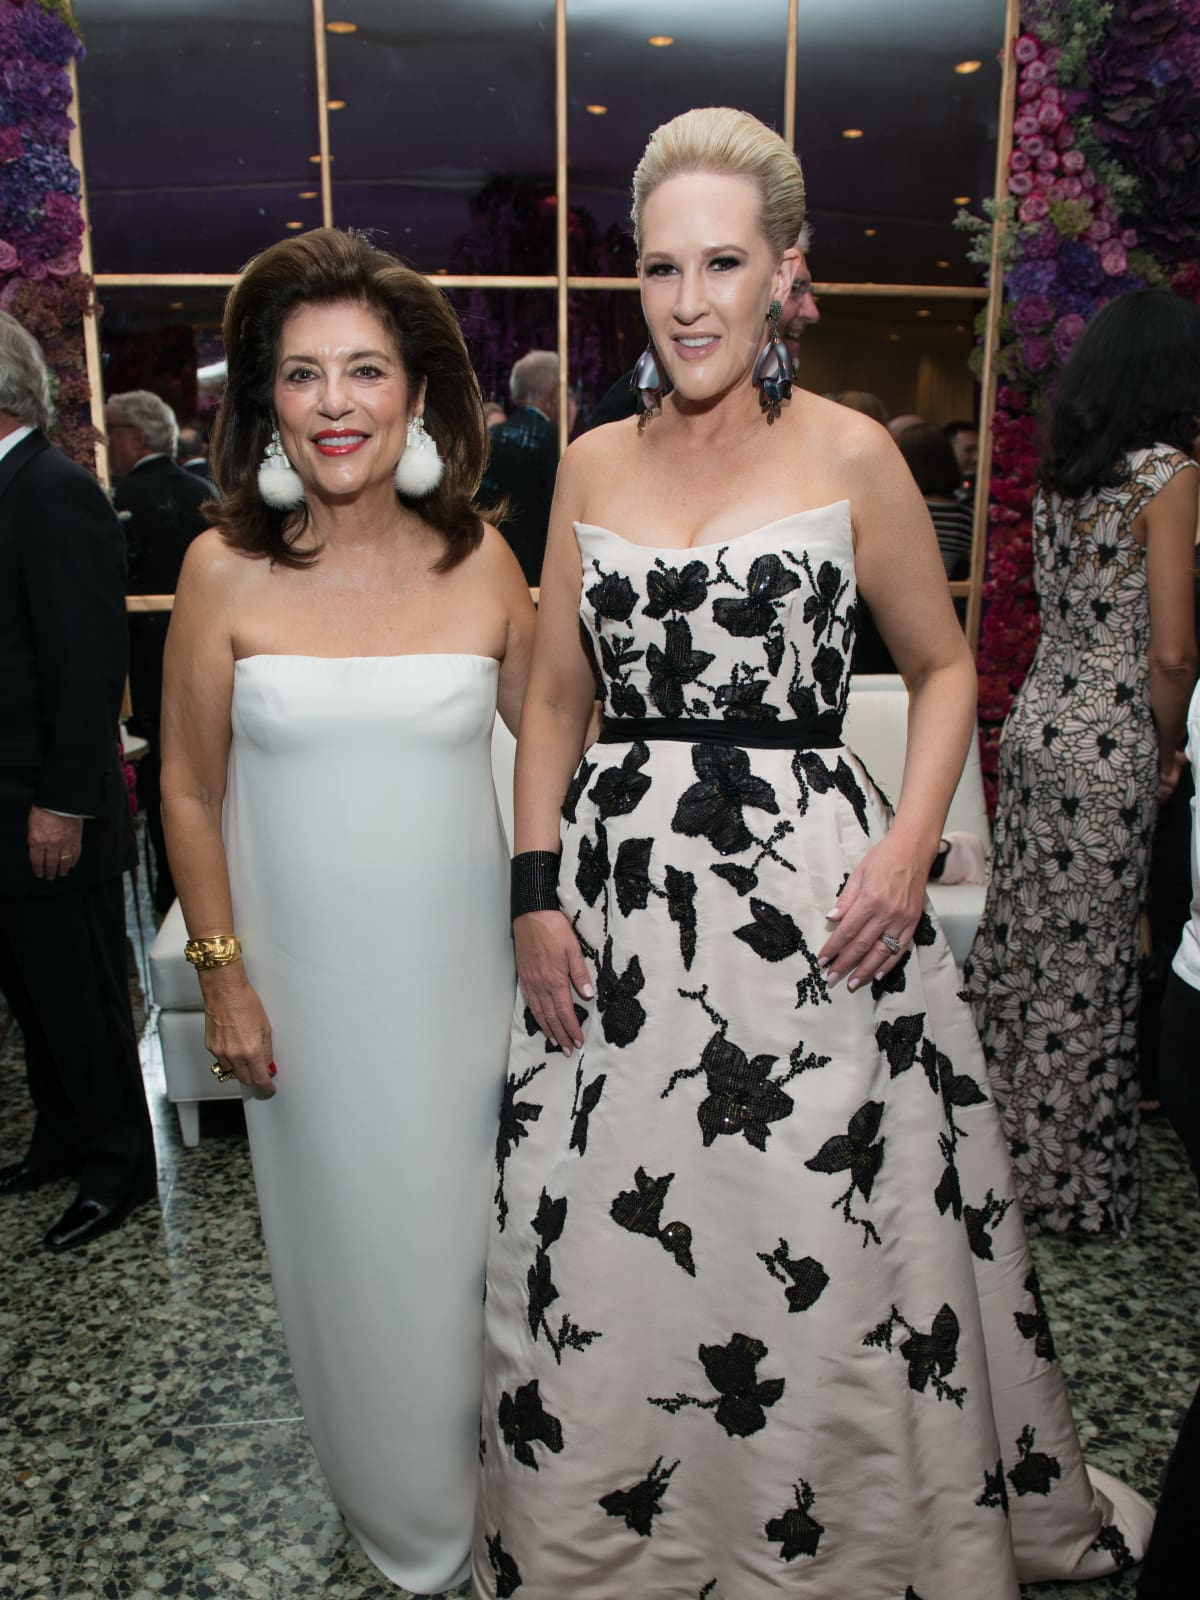 Dancie Ware, Kelly Silvers at MFAH Grand Gala Ball 2017